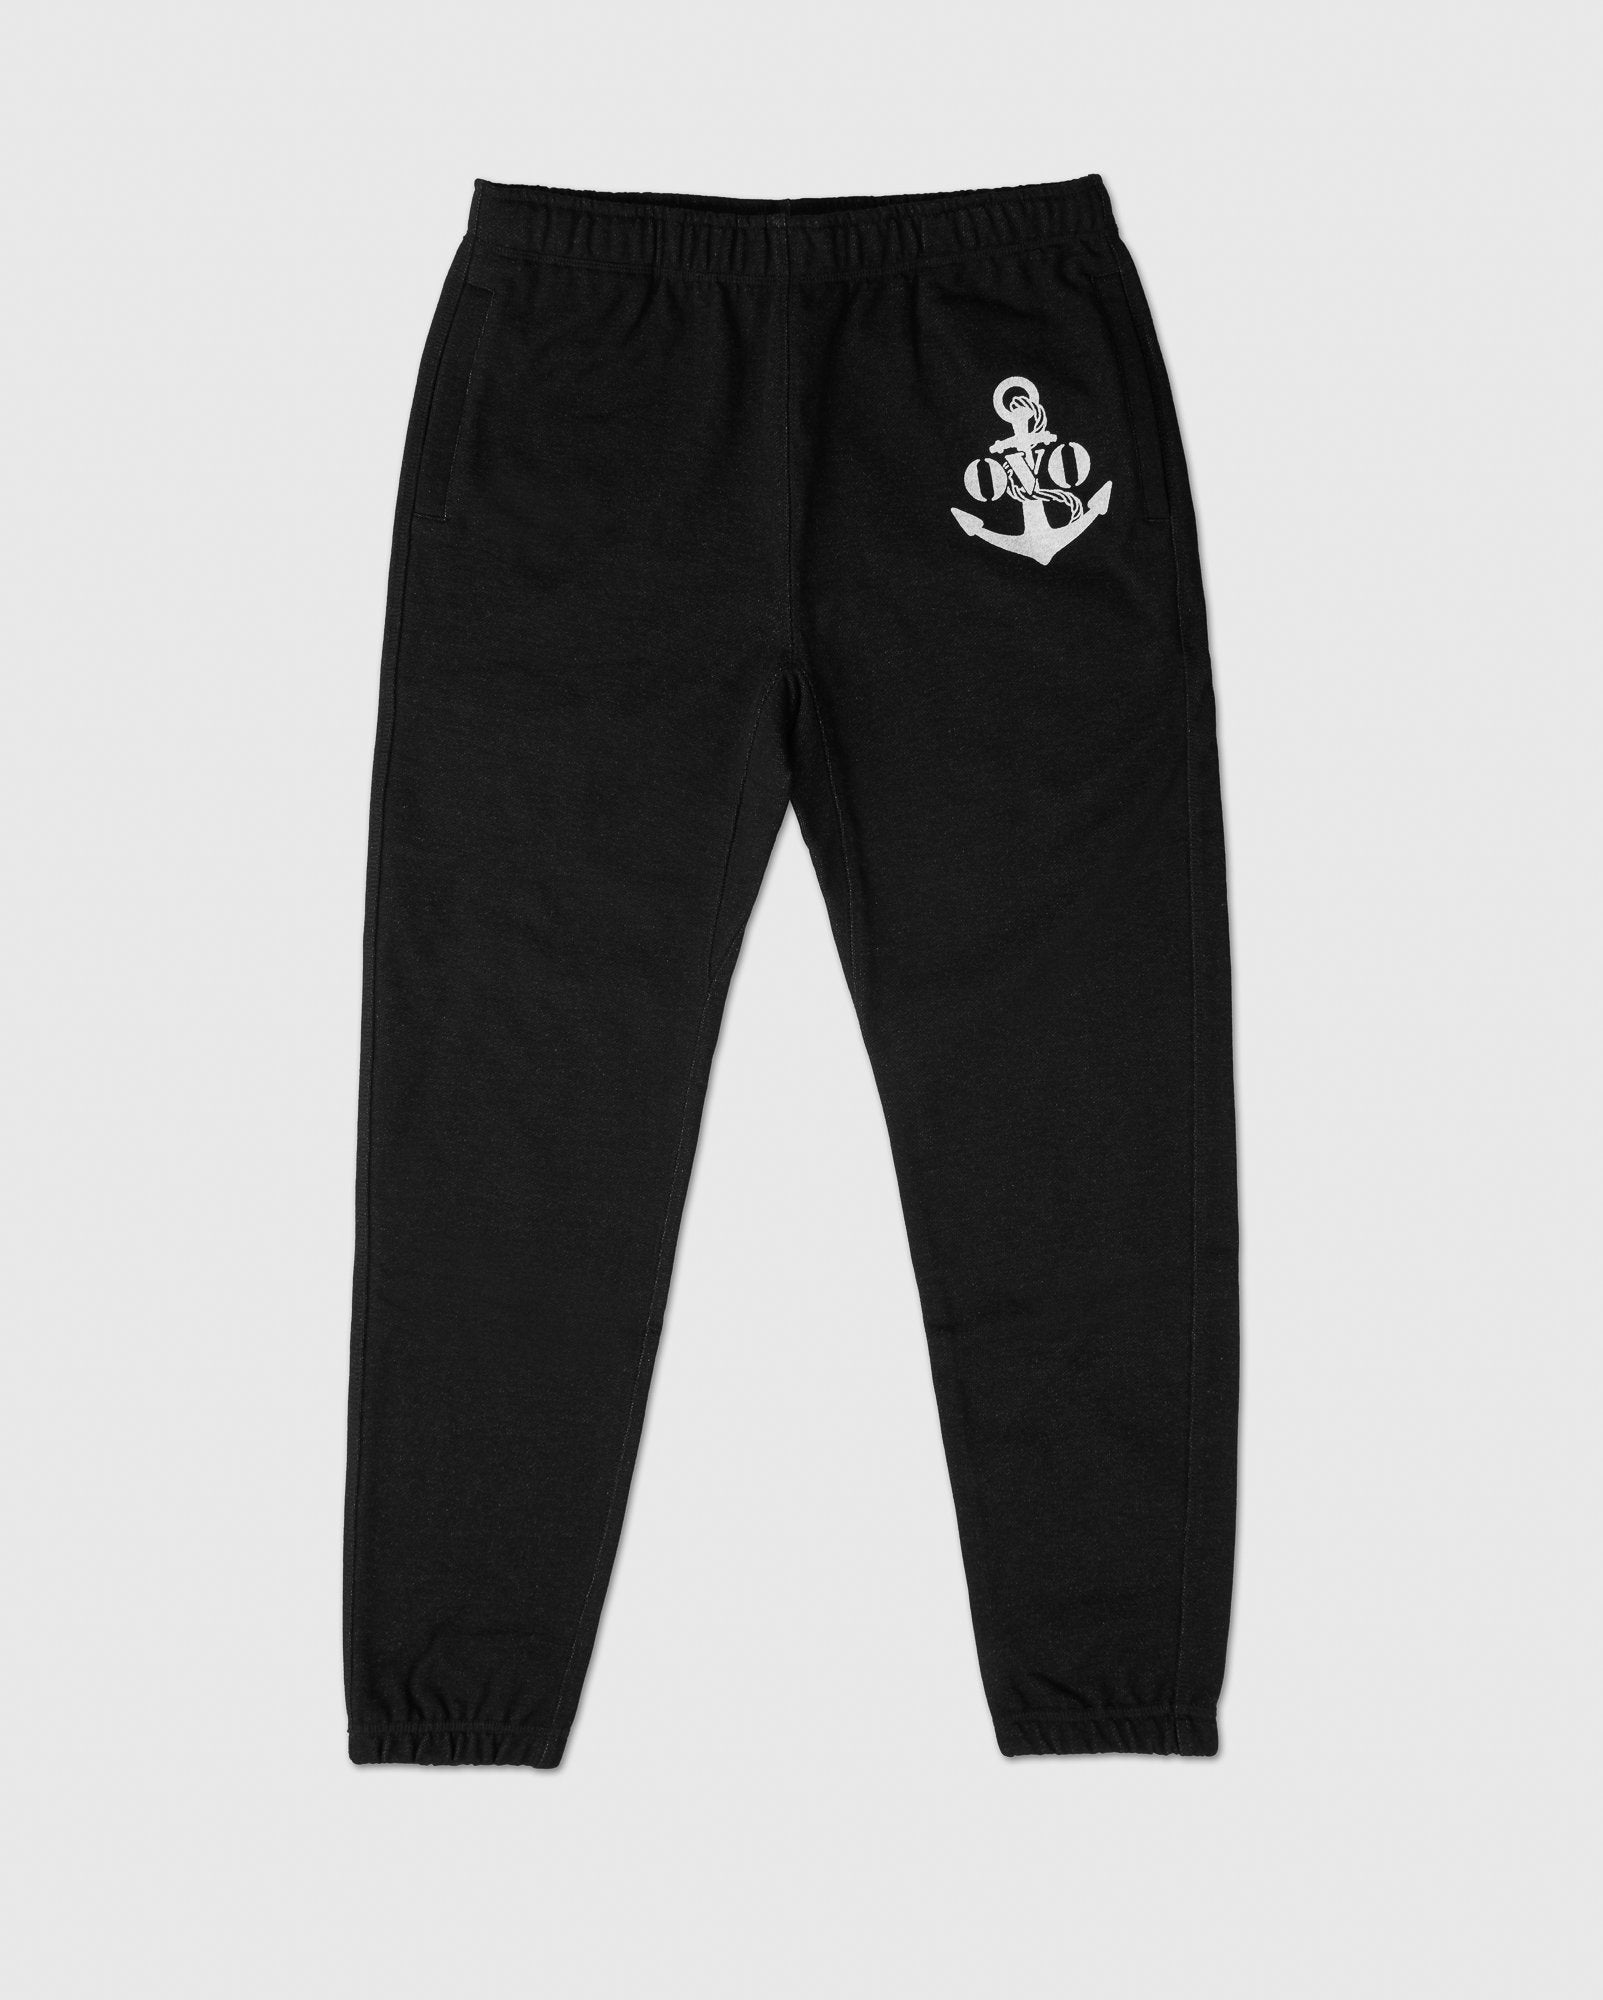 NAUTICAL INDIGO FLEECE SWEATPANT - BLACK IMAGE #1